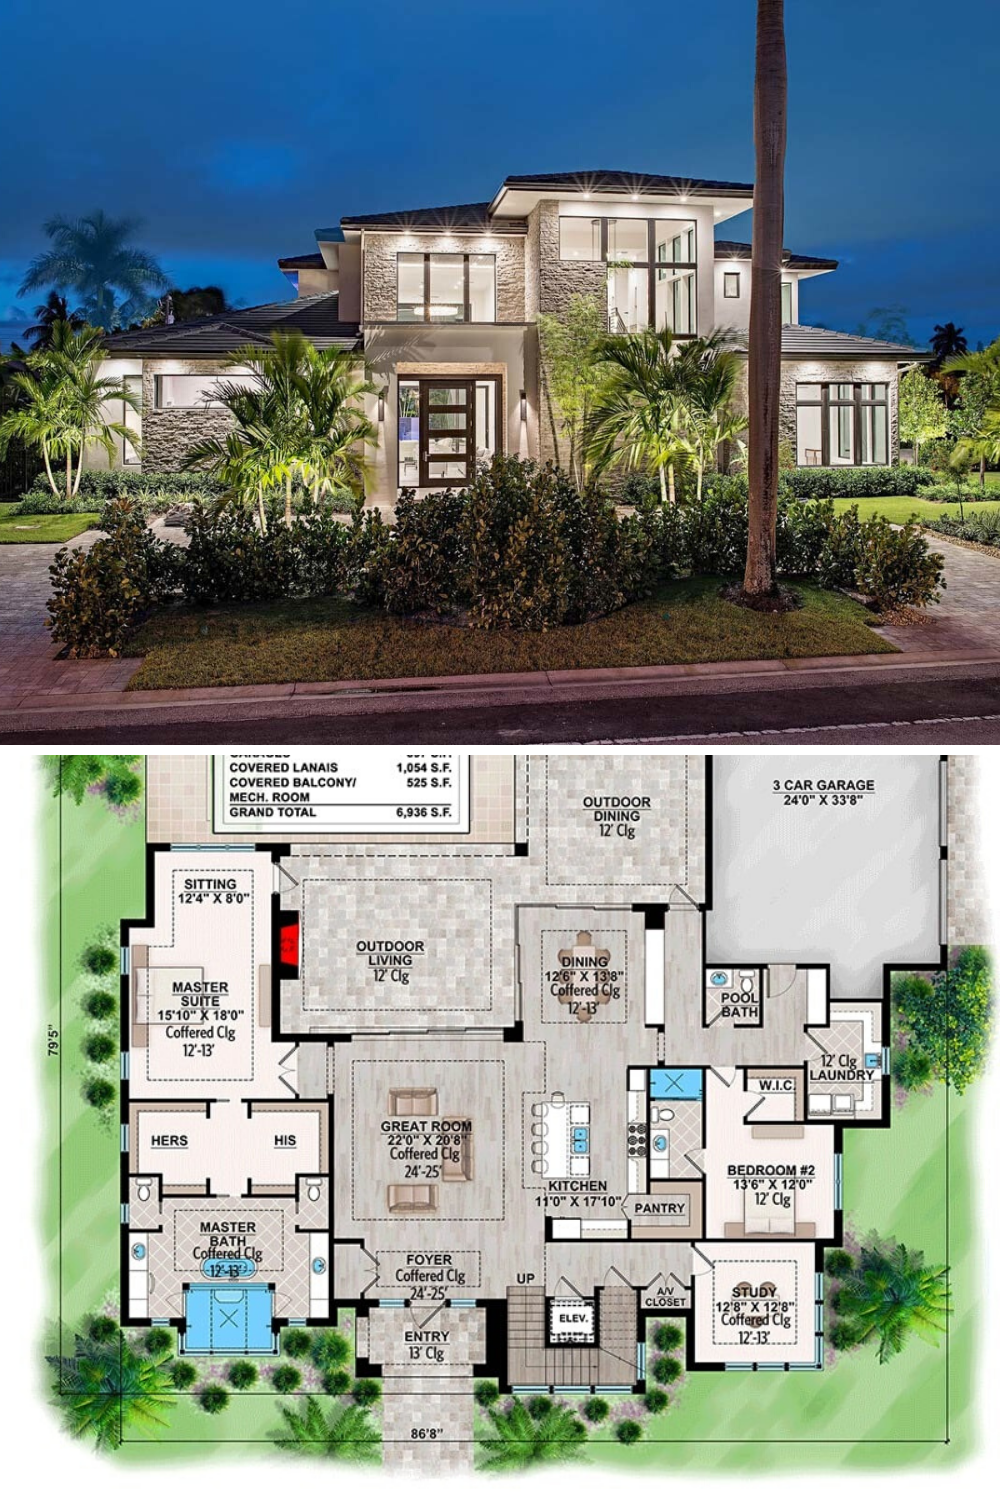 4 Bedroom Two Story Contemporary Home Floor Plan In 2020 Modern House Floor Plans House Layout Plans Modern Contemporary House Plans